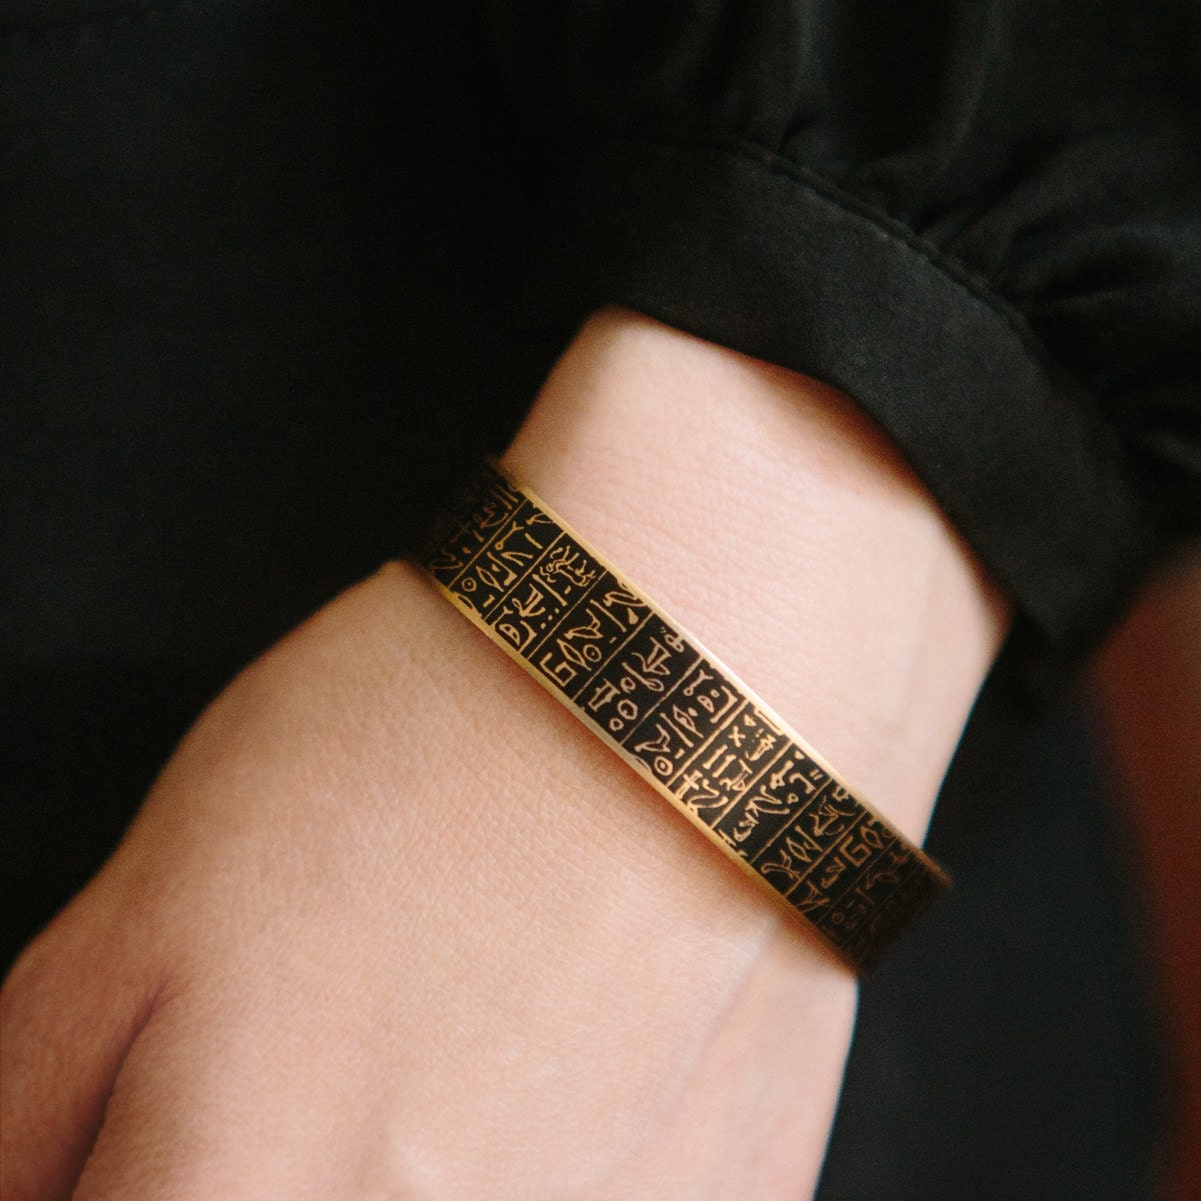 Hieroglyphs Skinny Cuff Bracelet  Hieroglyphic Egyptian Jewelry  Ancient Egypt Hieroglyphs  Gift For Women  Archaeologist Gift